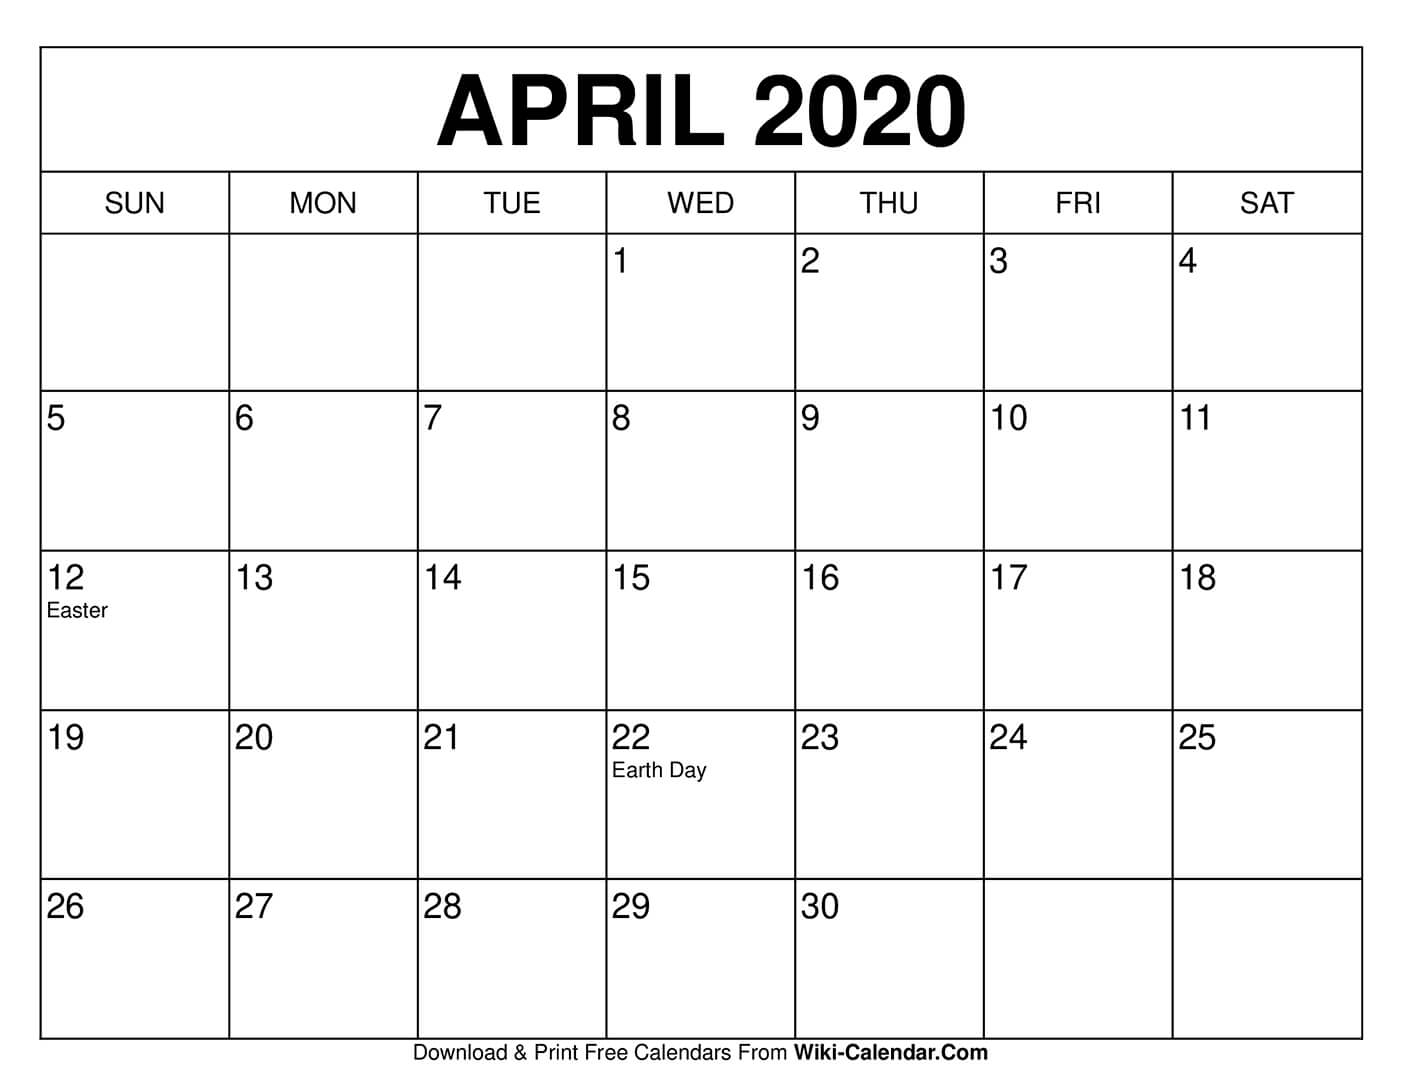 Free Printable April 2020 Calendars regarding Free Printable 2020 Calendars You Don't Have To Download